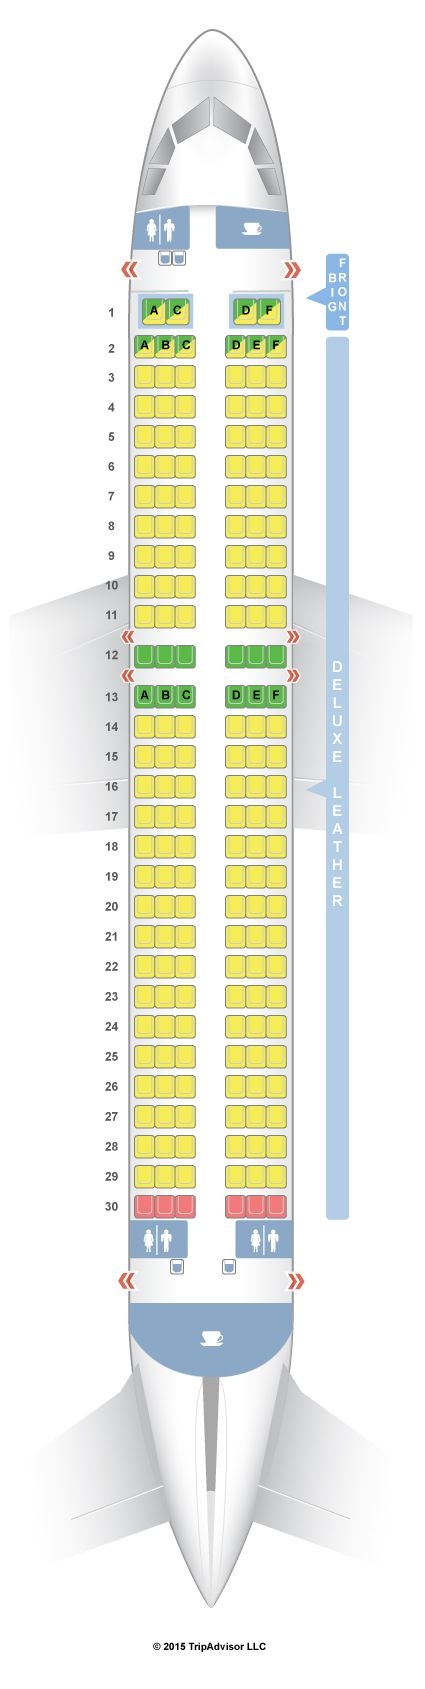 Seatguru Seat Map Spirit Airbus A320 320 Seatguru Ryanair Qatar Airways